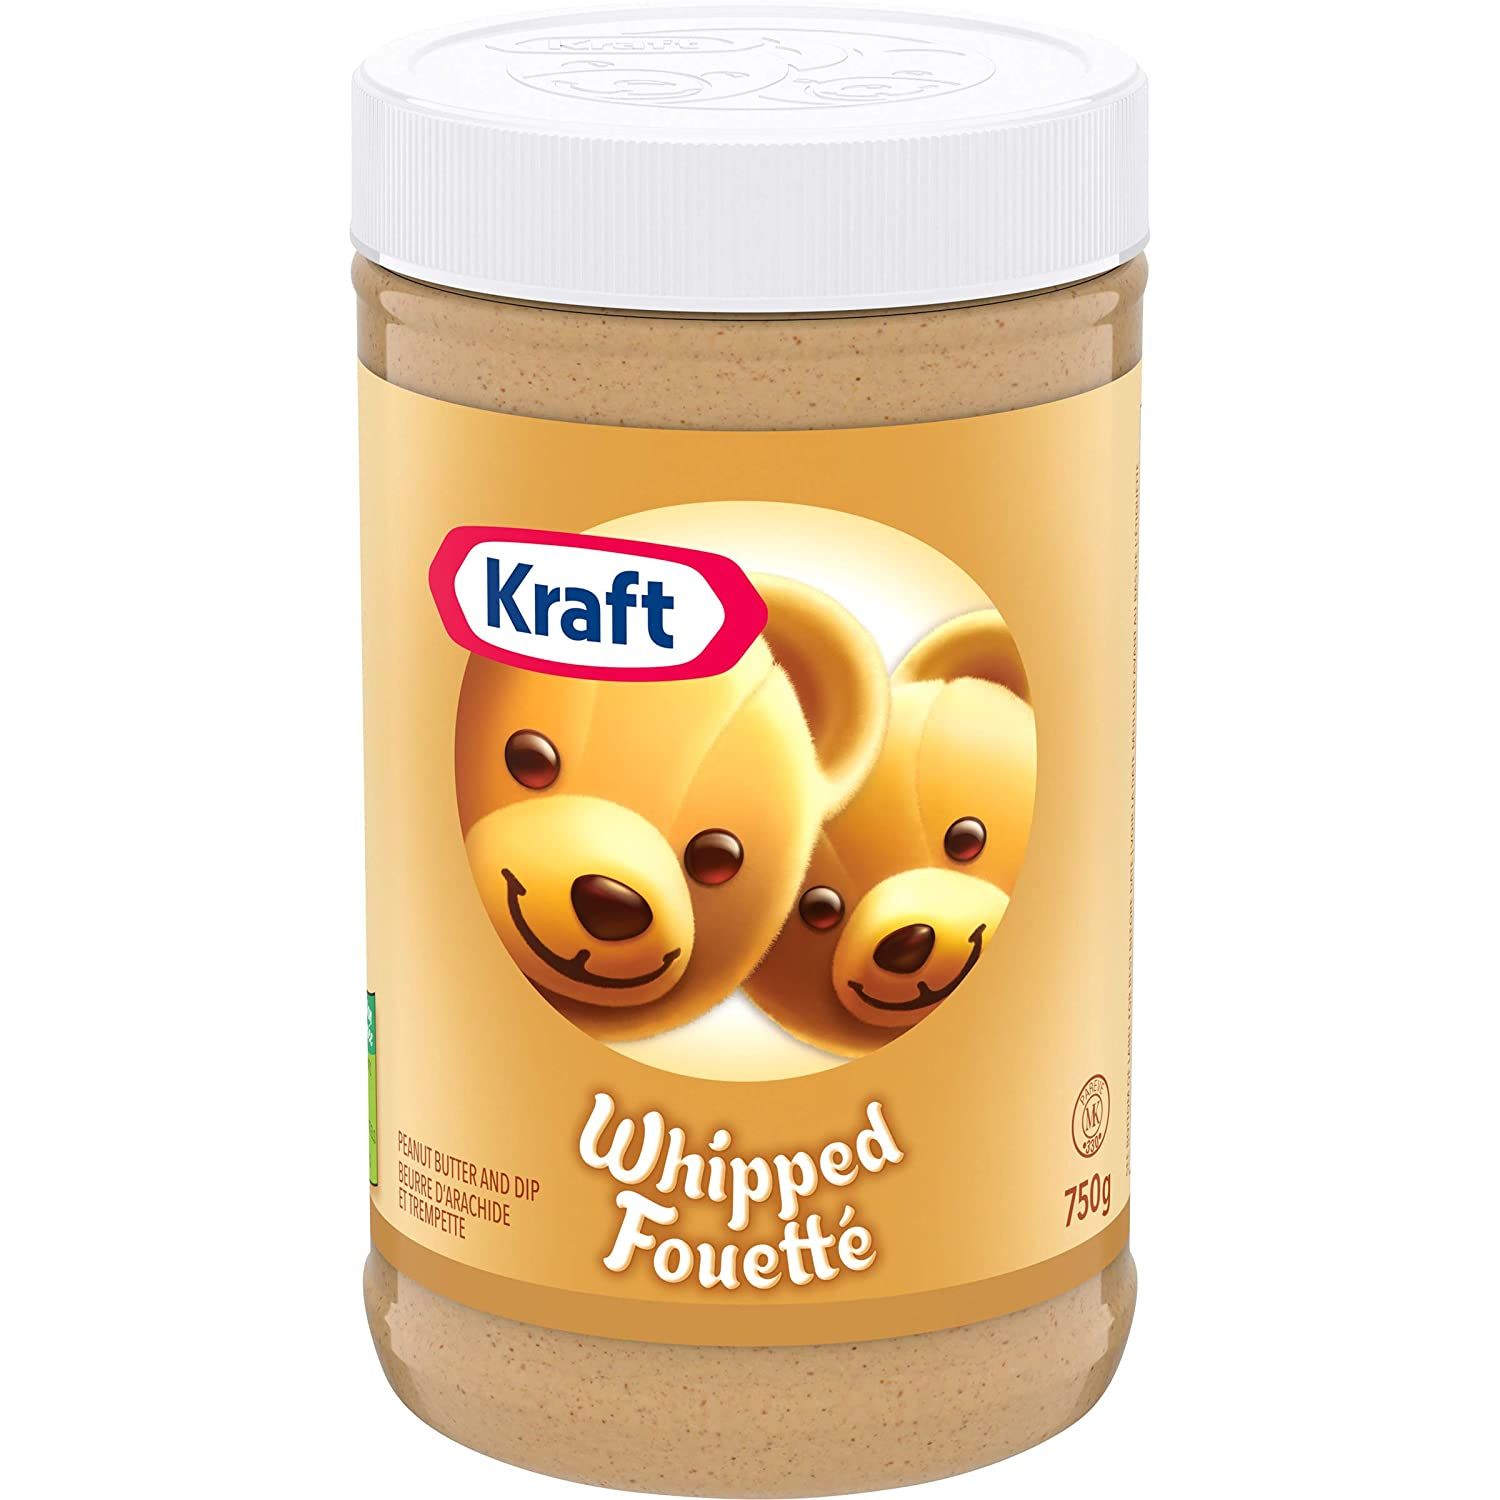 Sales of SALE items from new works Kraft Peanut Butter Direct stock discount Whipped 750g 26.5 oz {Import